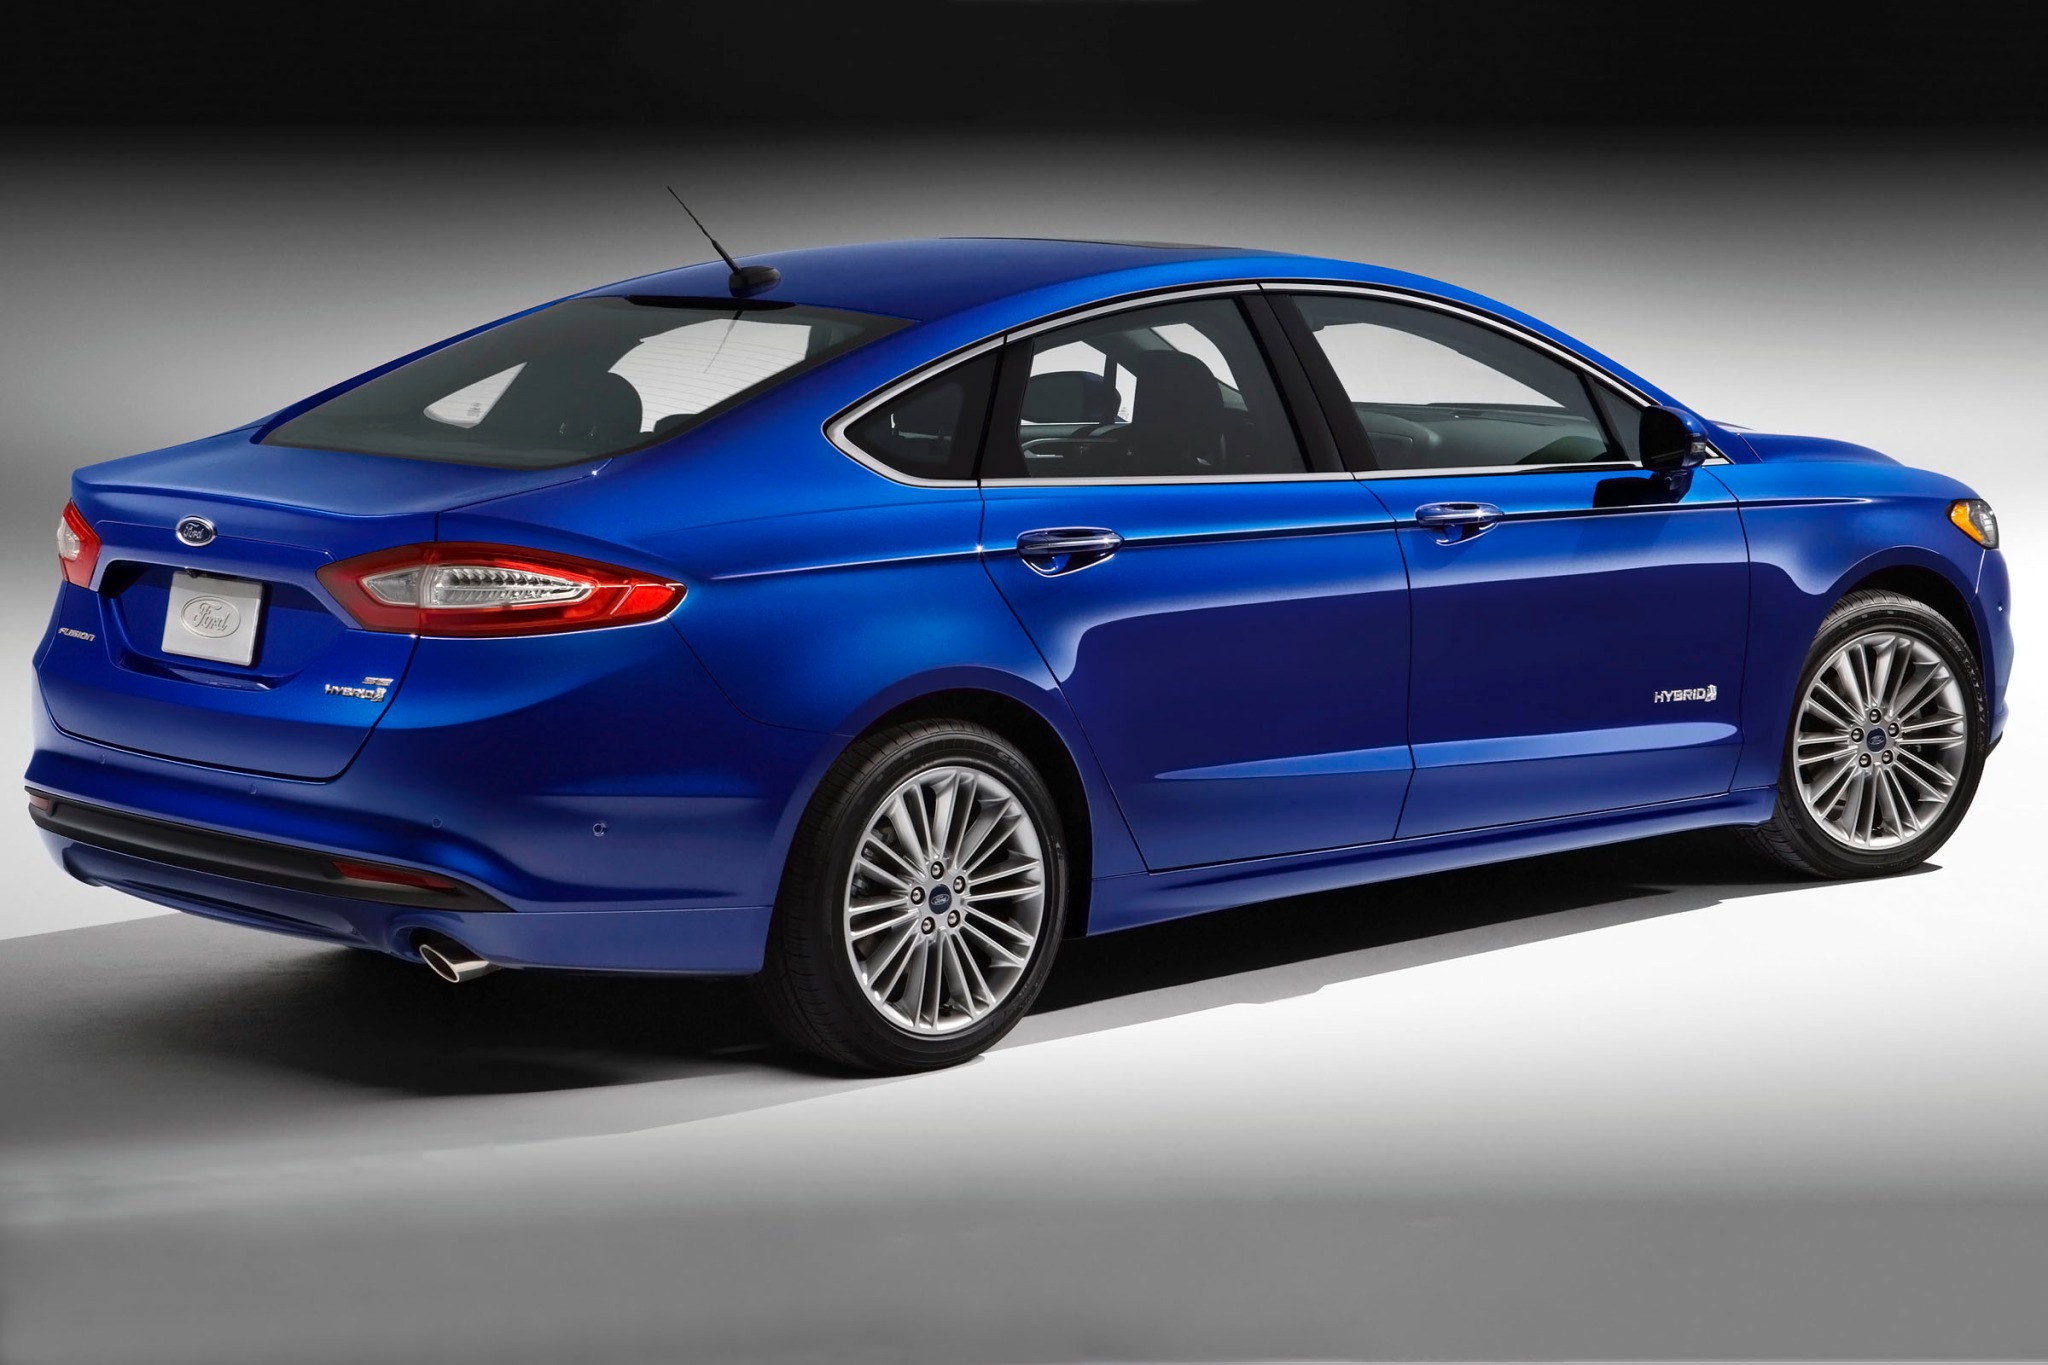 2014 Ford Fusion Hybrid Image 3